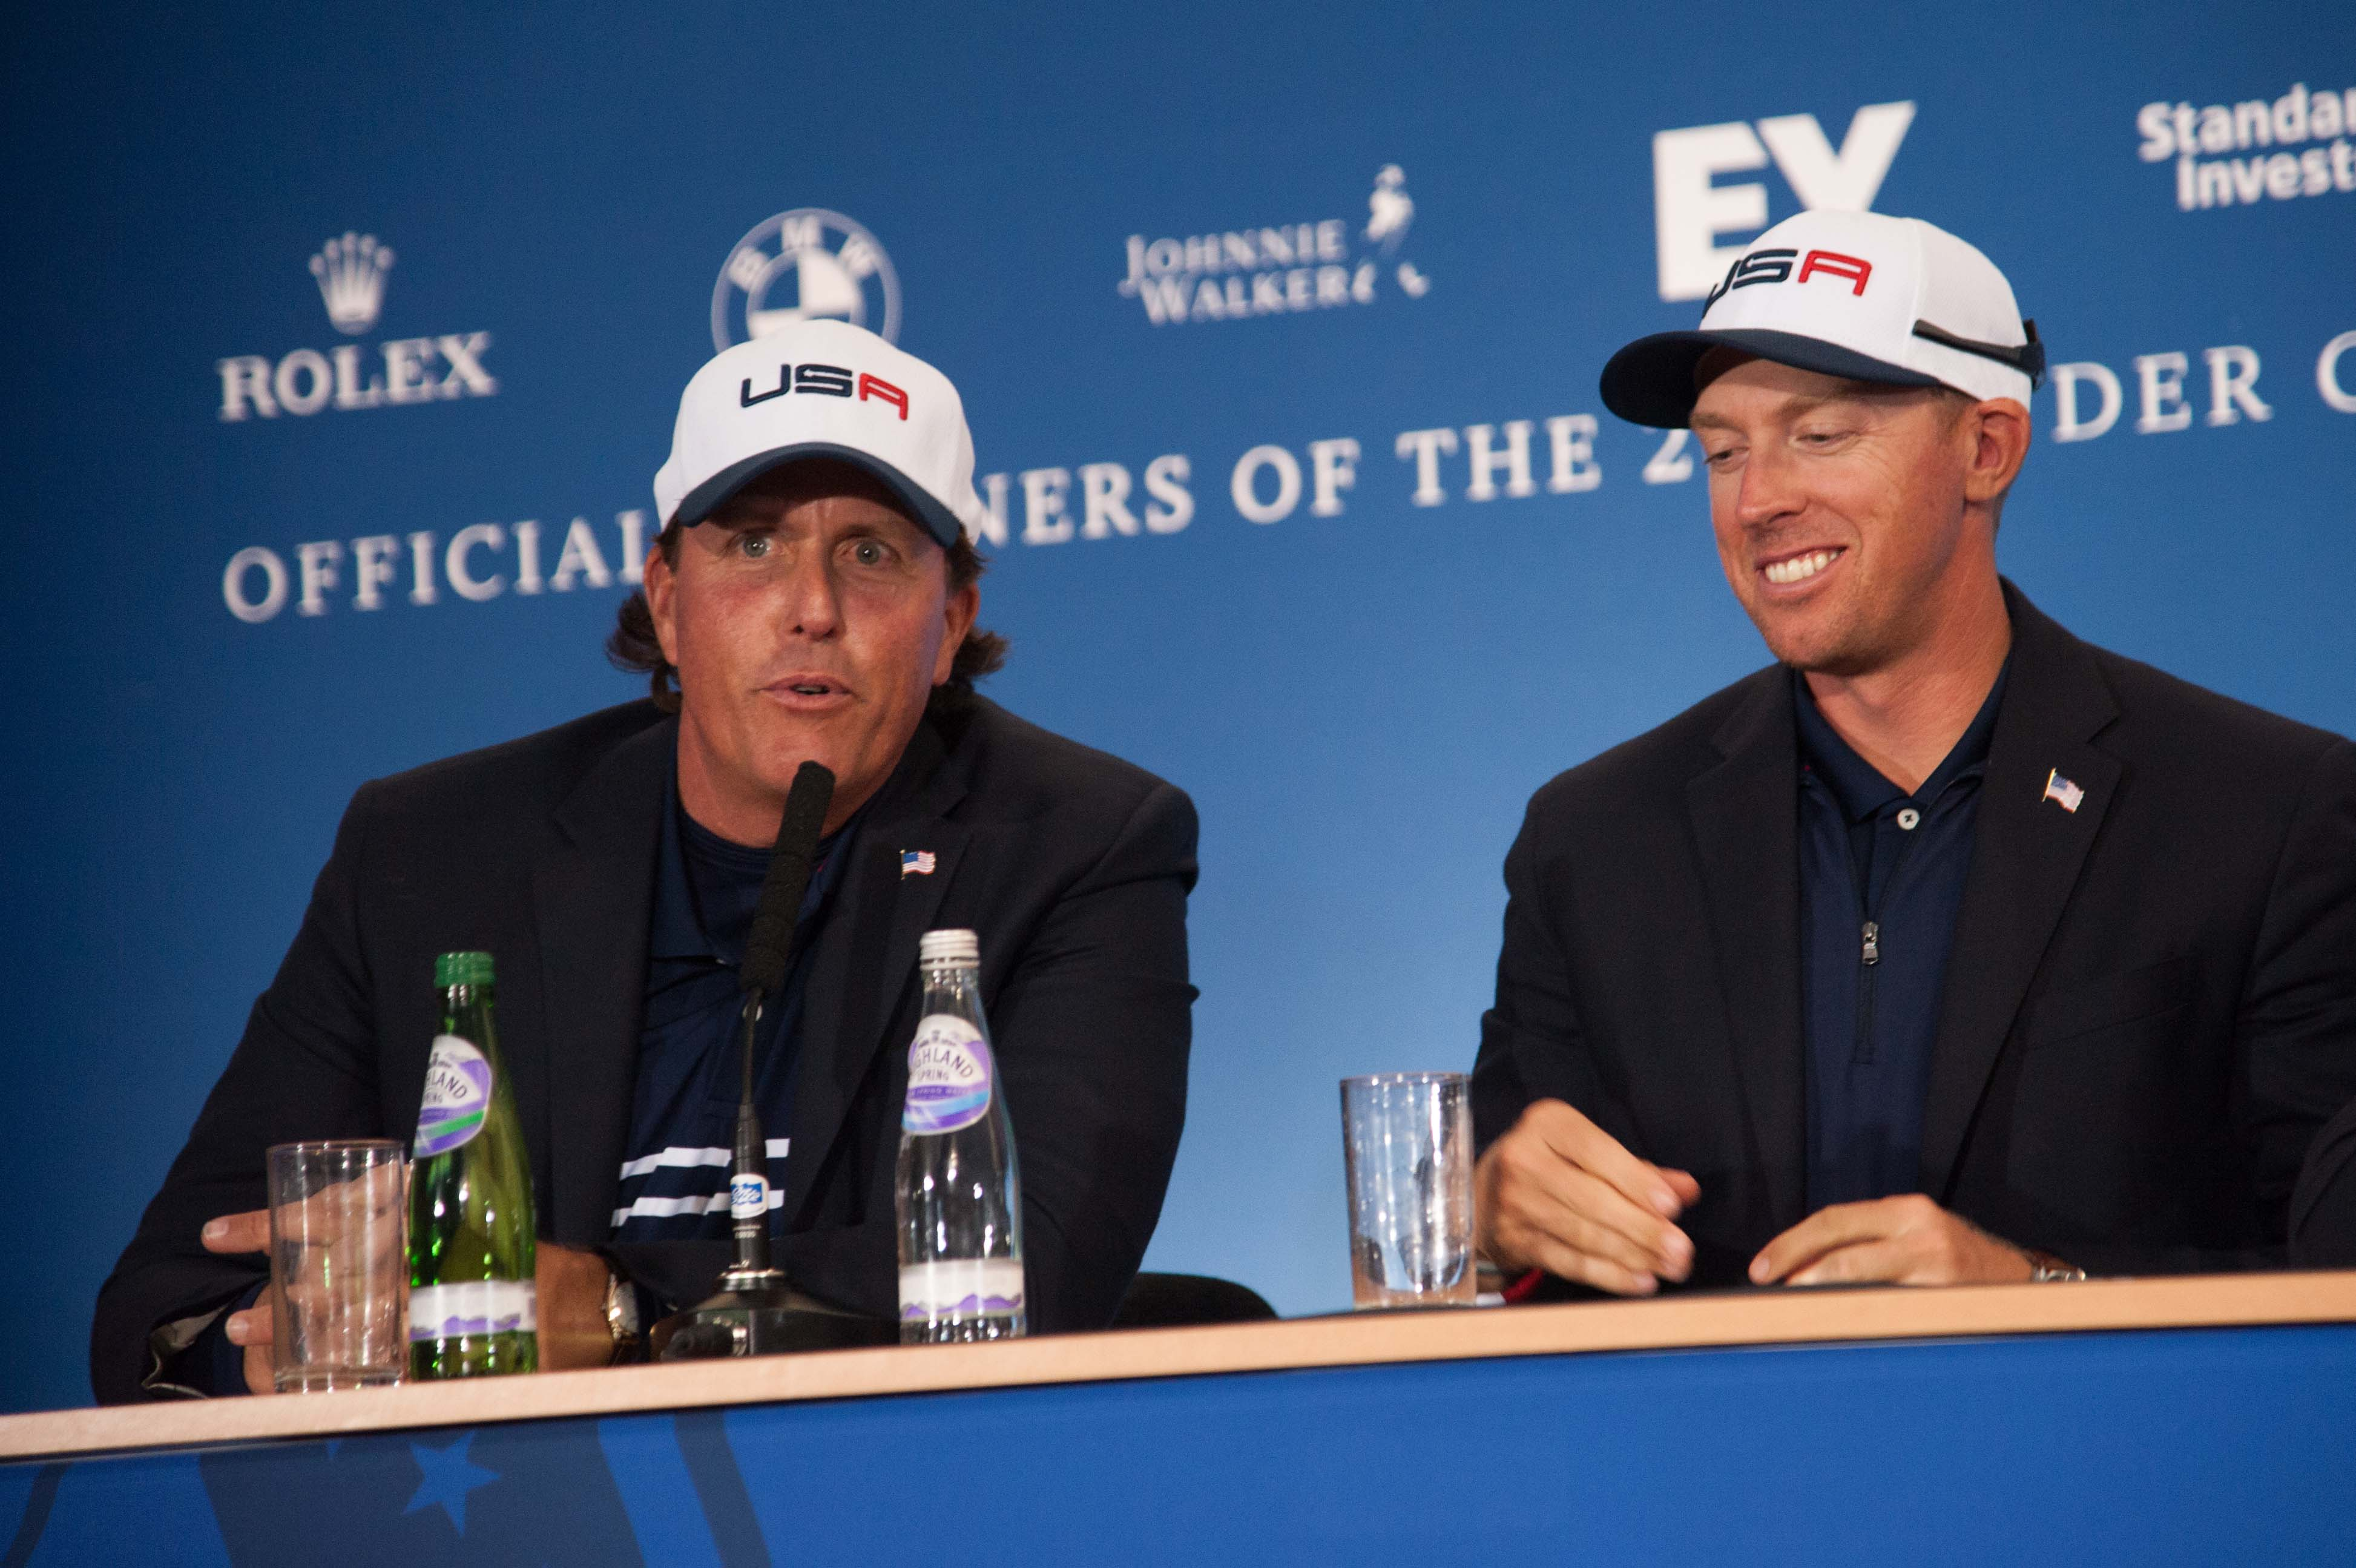 Phil Mickelson whining in the post-Ryder Cup press conference